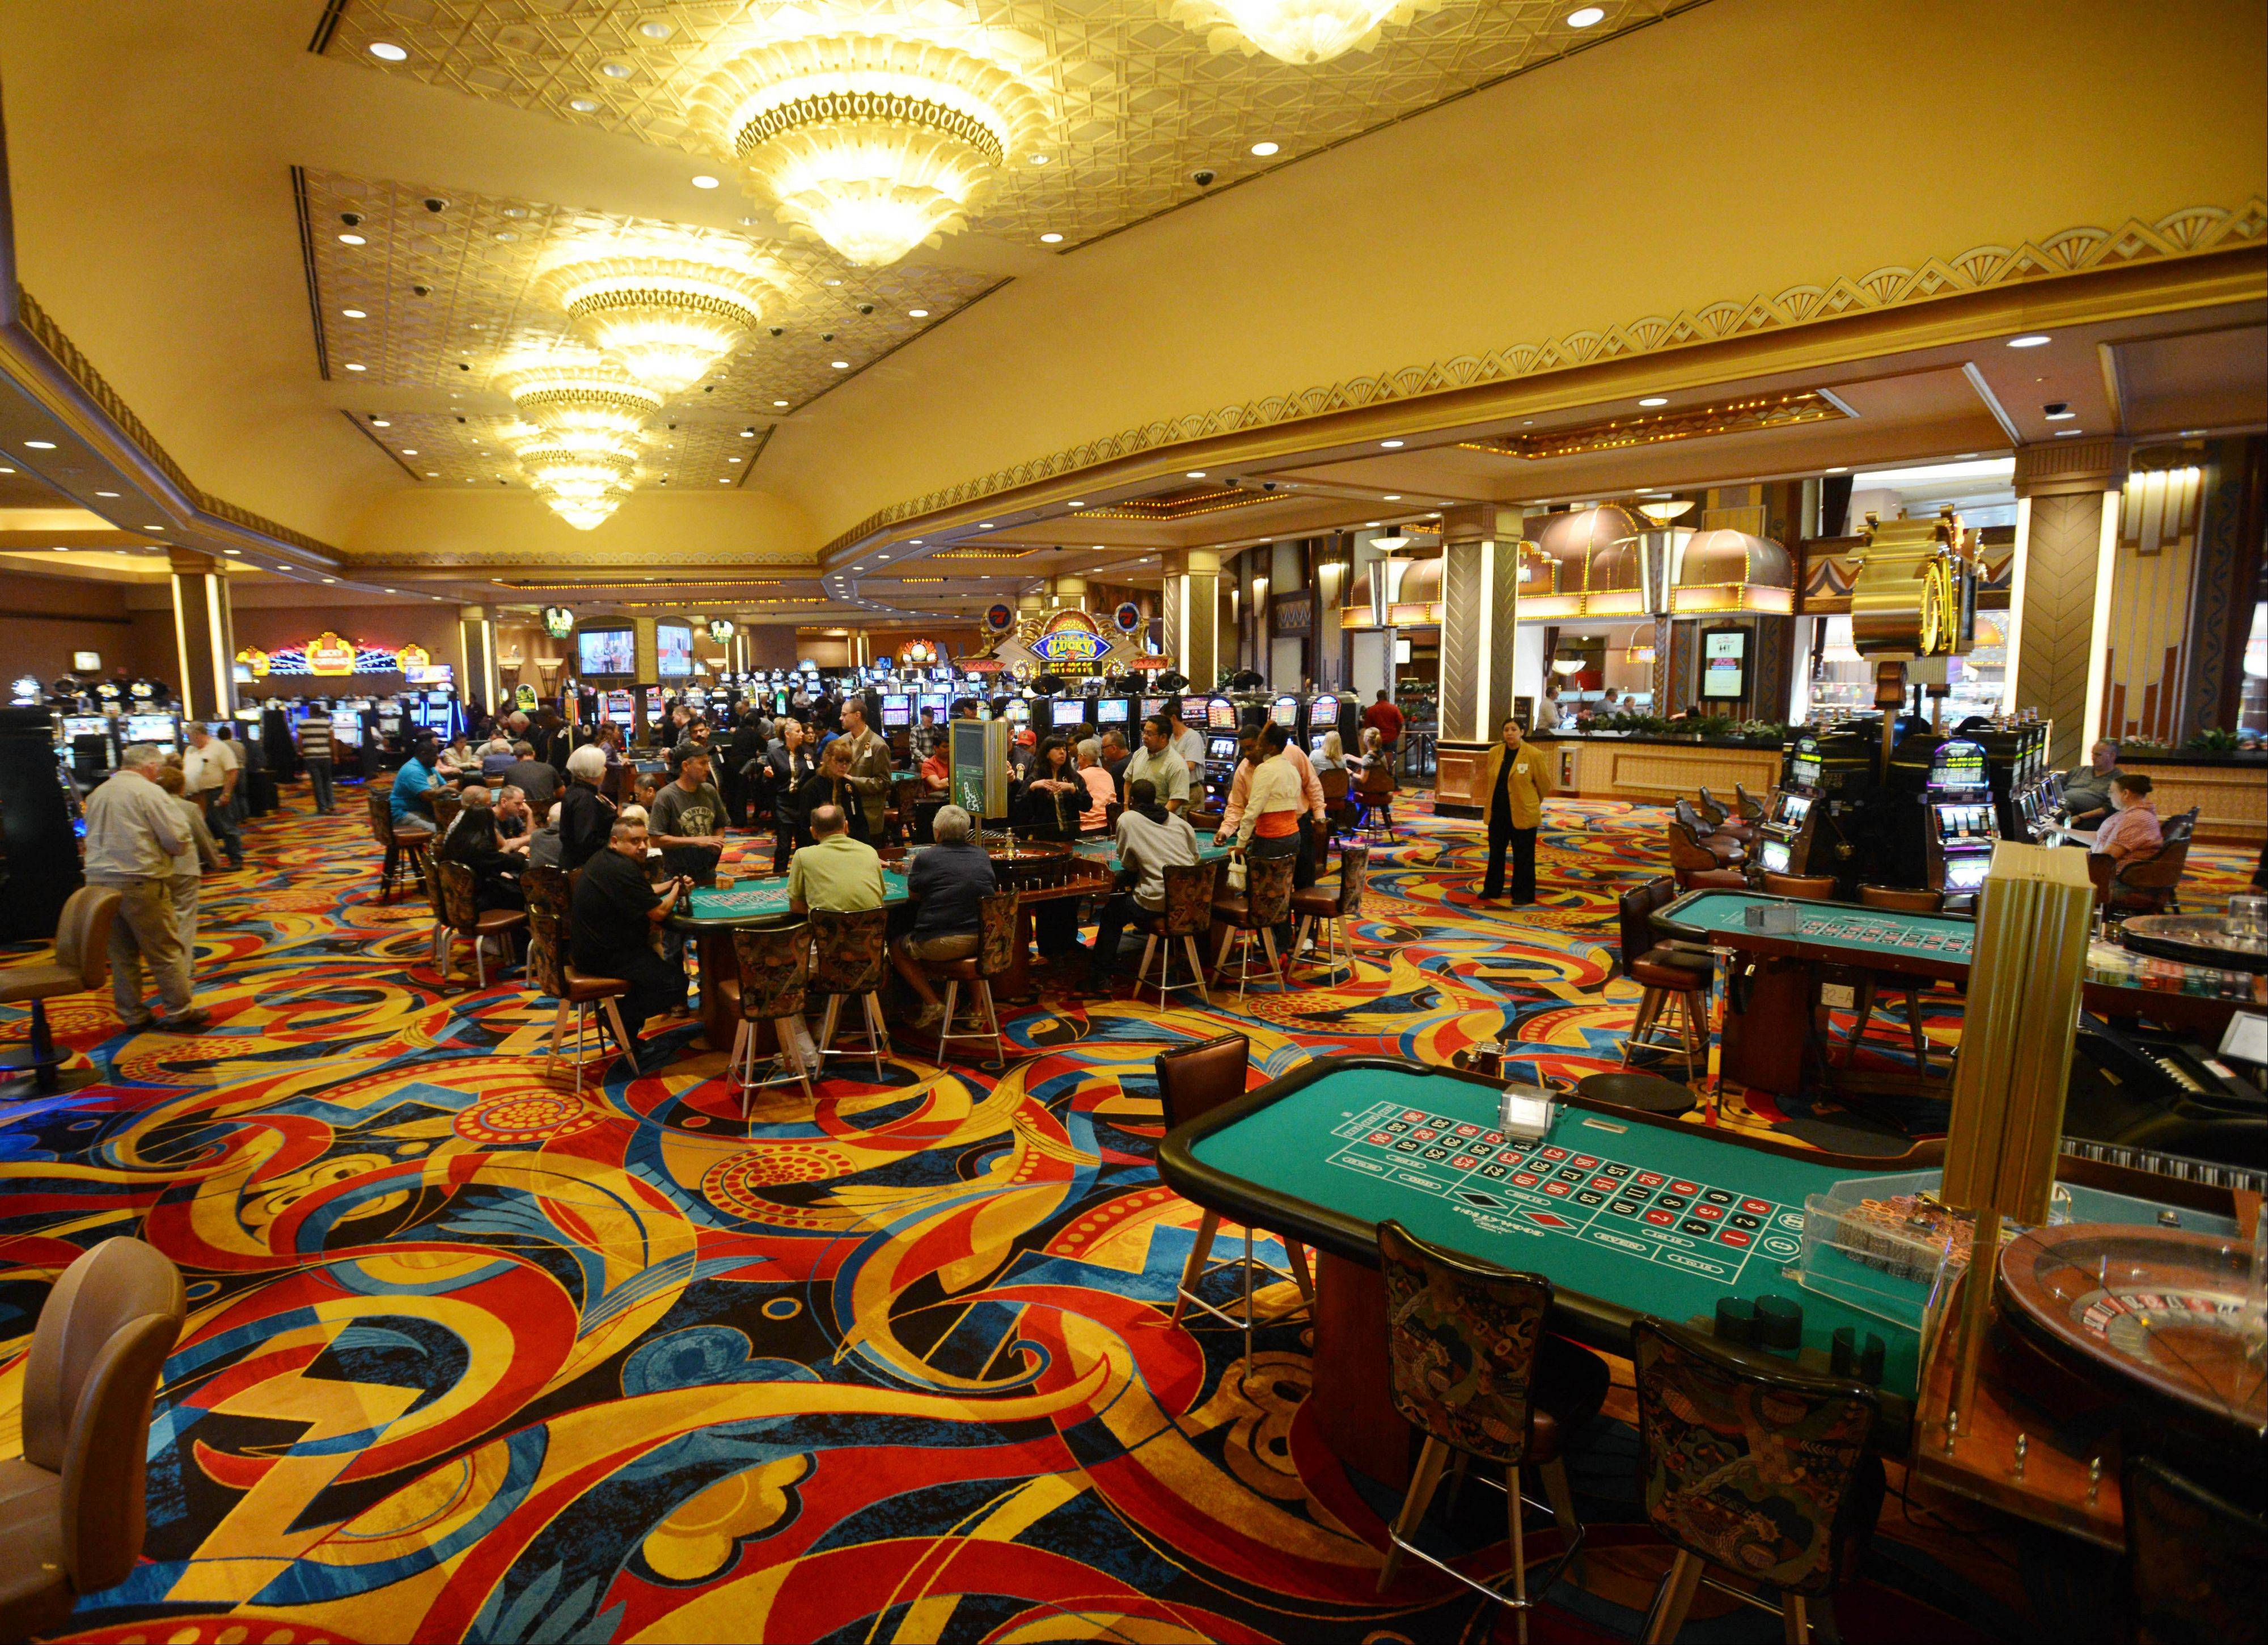 Adorned With New Carpet Installed In April, Hollywood Casino Aurora Is  Celebrating Its 20th Anniversary